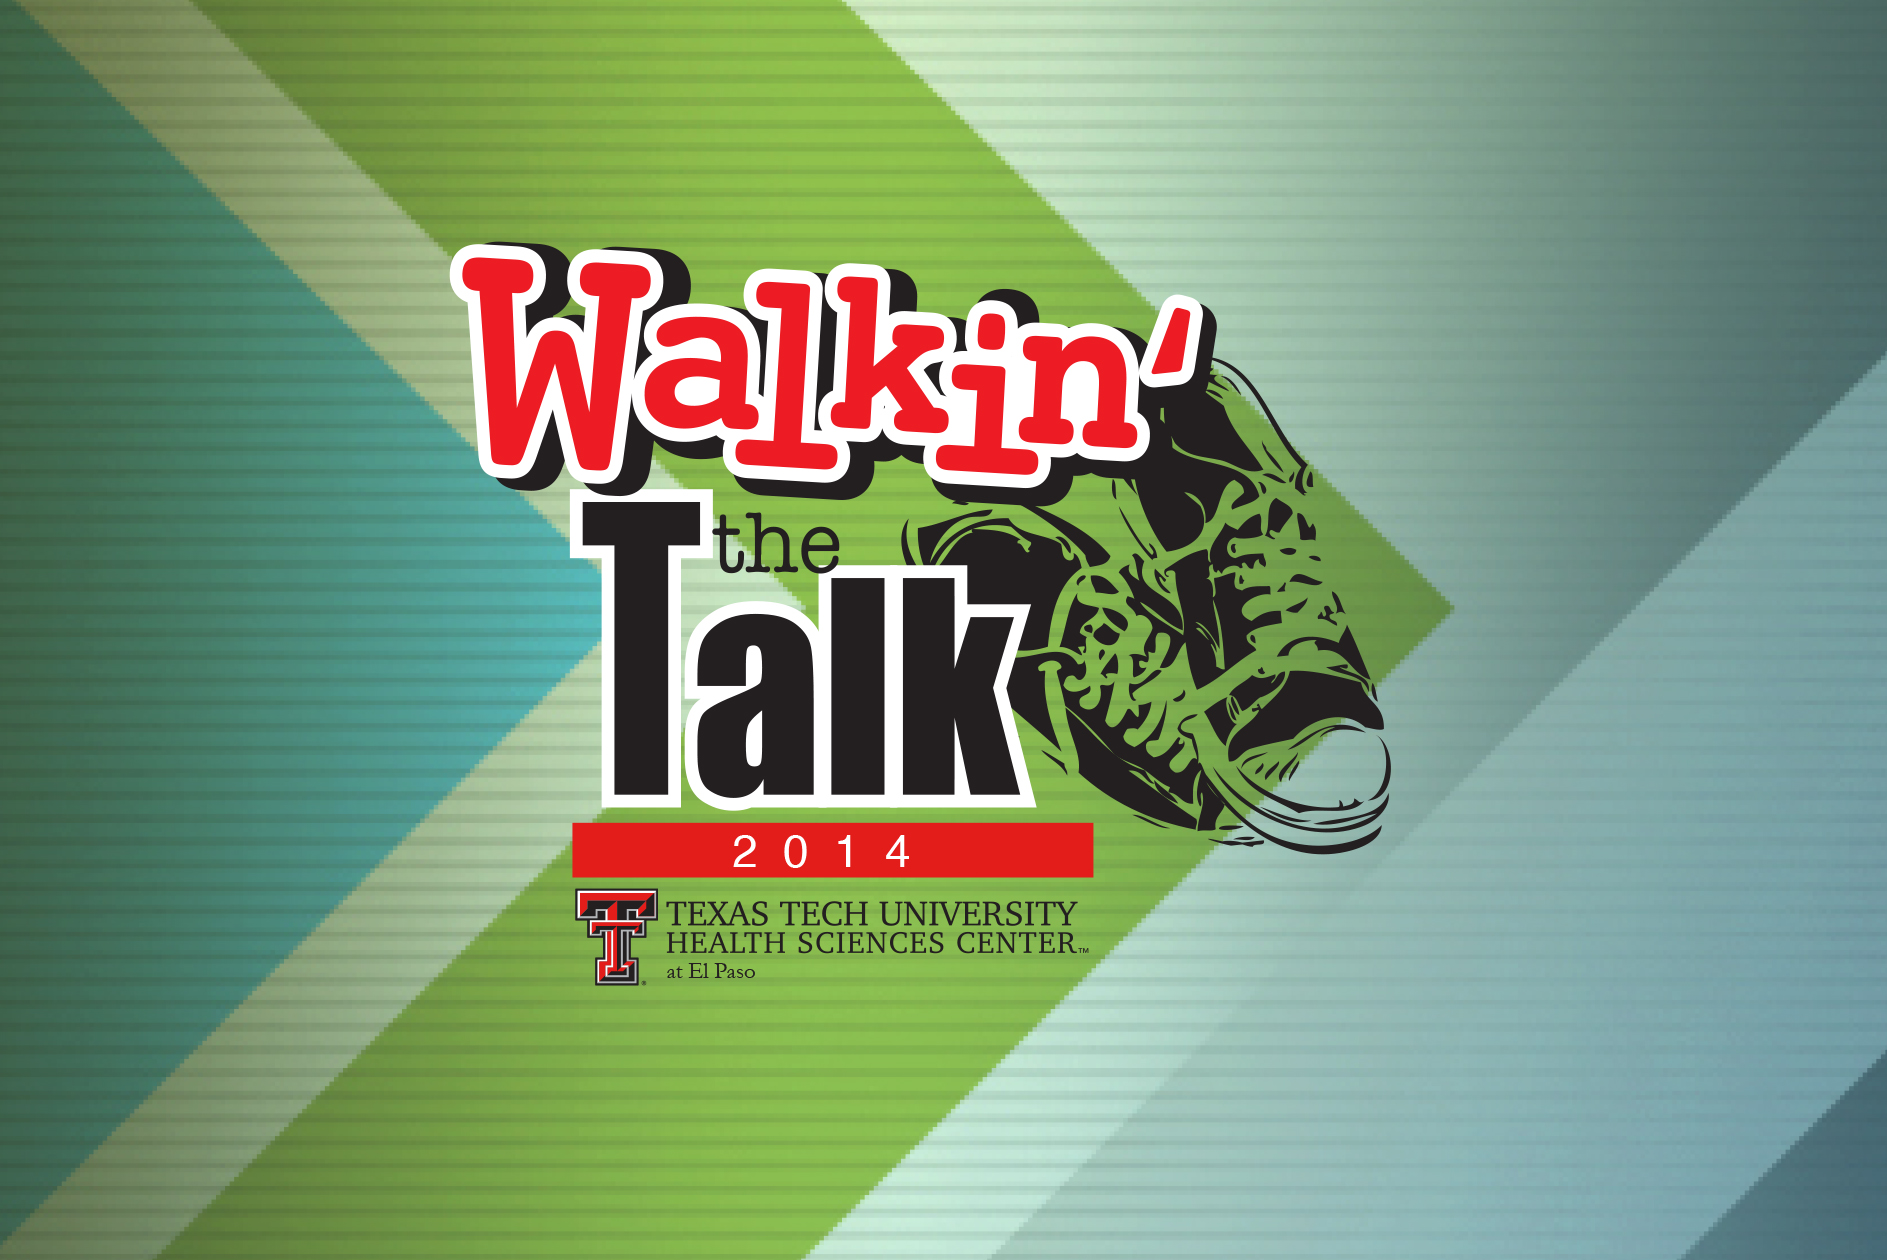 Walkin' the Talk November Lecture